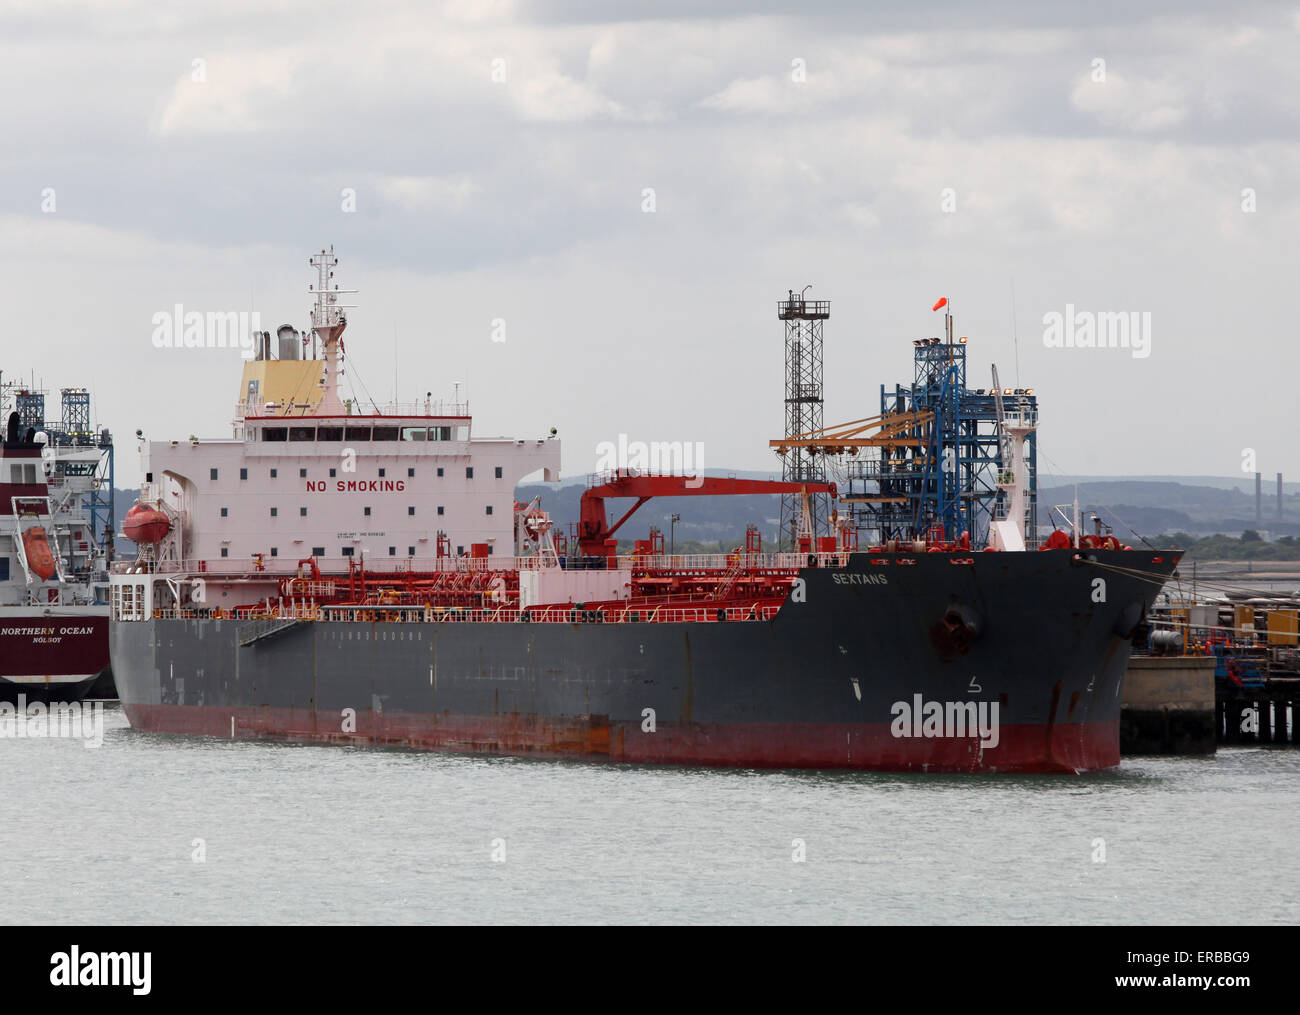 Sextans oil chemical tanker ship pictured at Fawley Refinery near Southampton - Stock Image